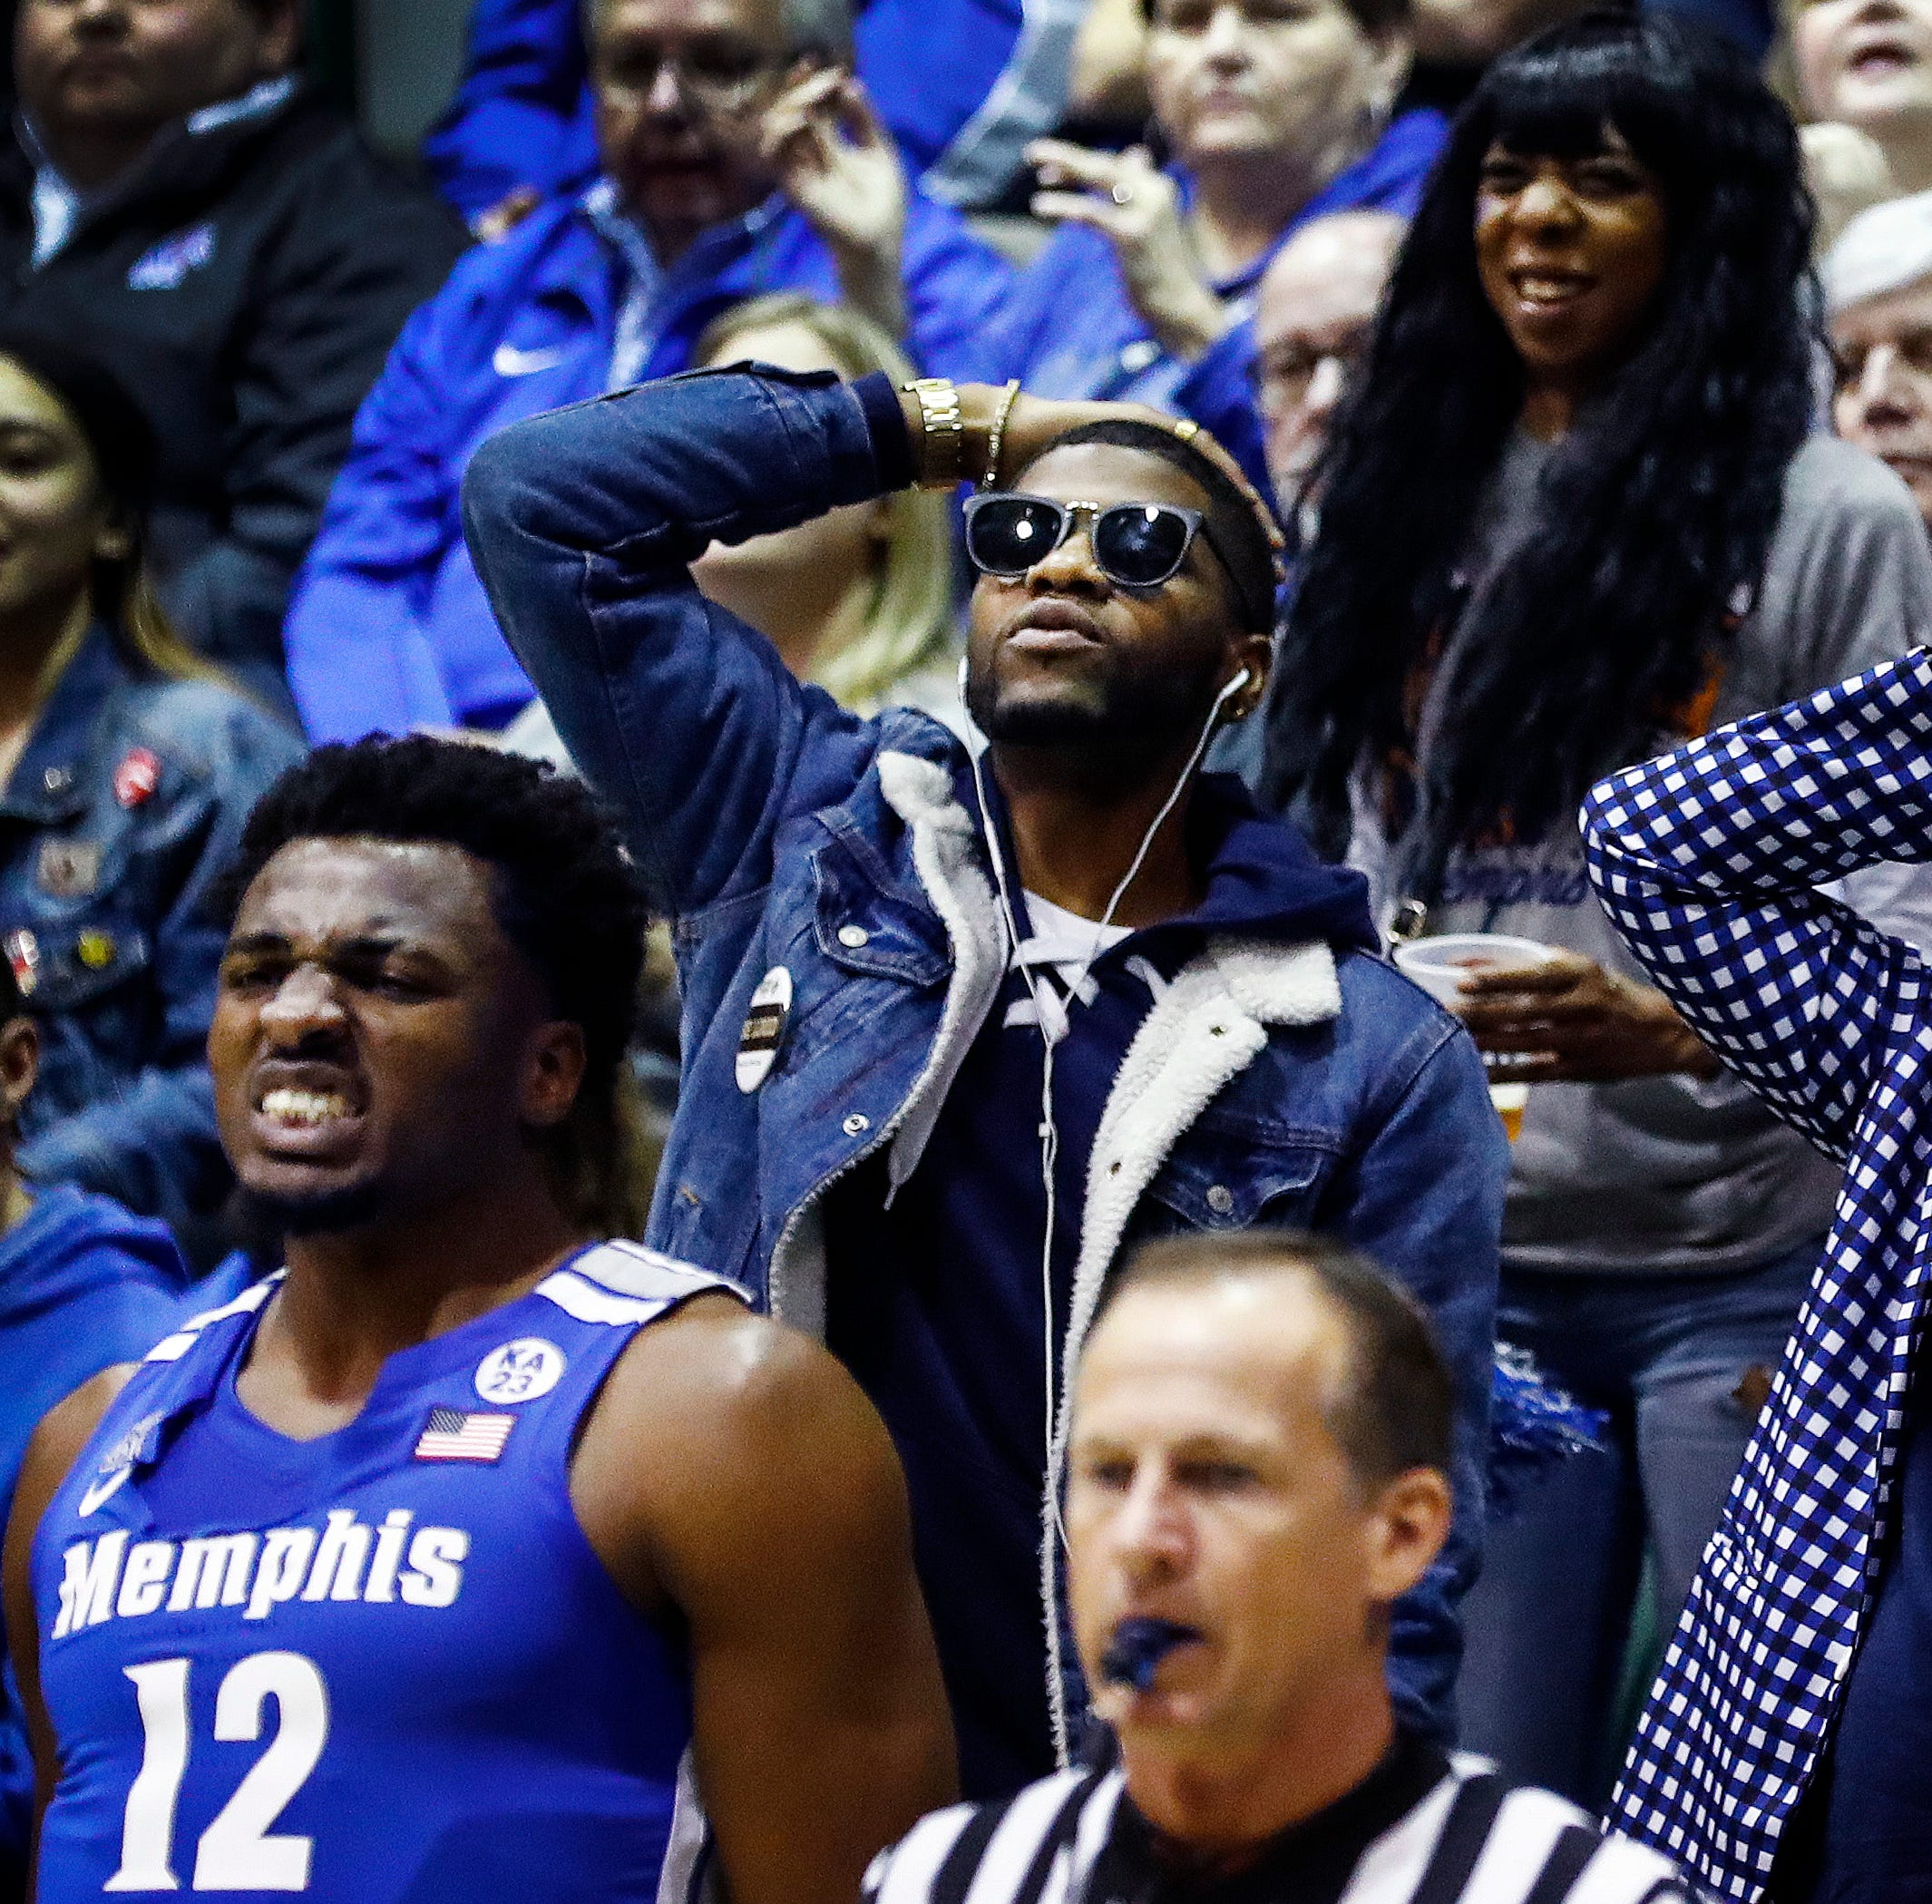 Sparse crowd at Tulane gives Memphis basketball unique road experience